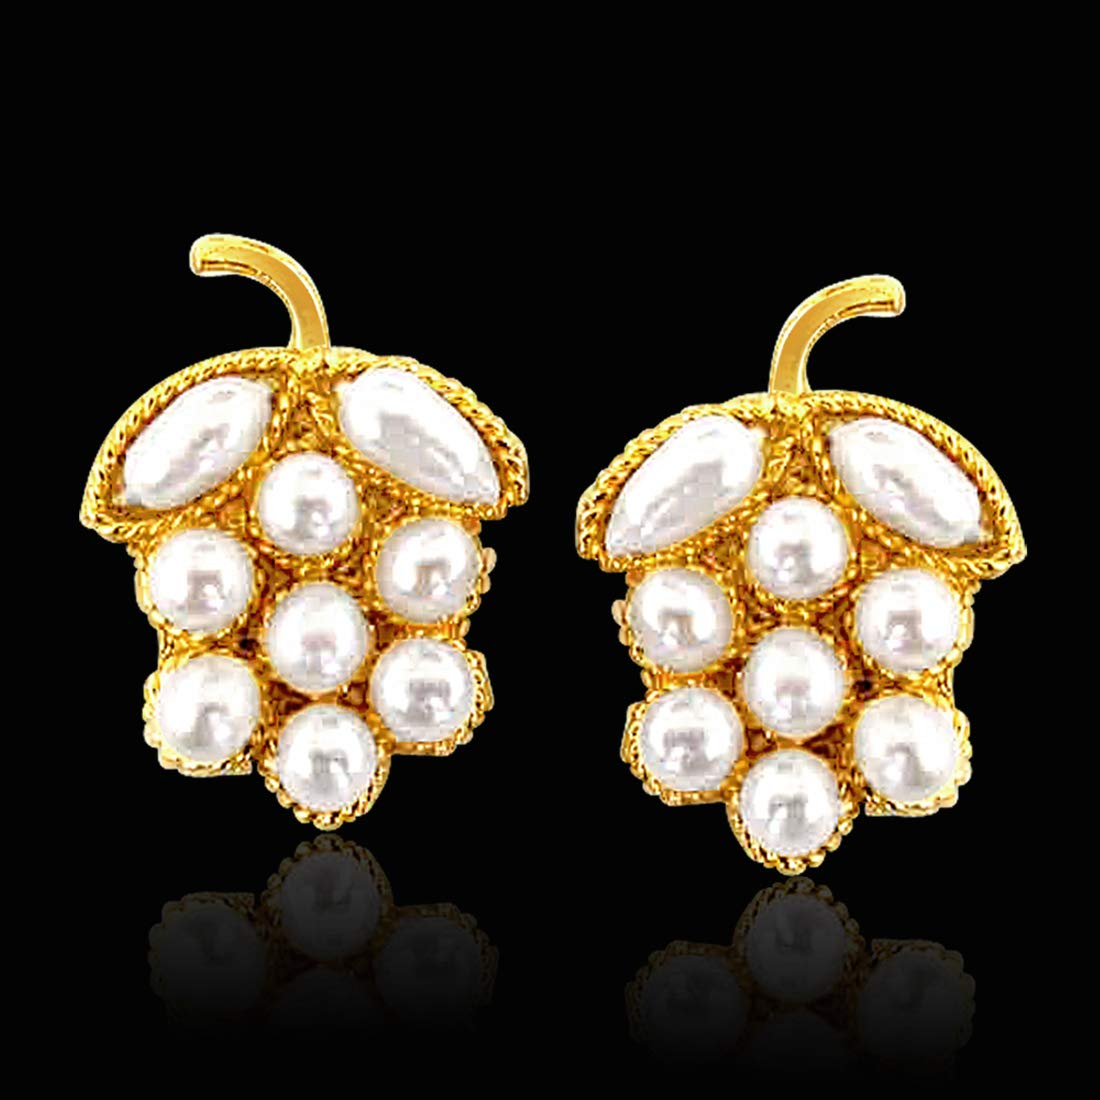 Lustrous Pearl Present - Real Freshwater Pearl & Gold Plated Grapes Shaped Earring for Women (SE42)